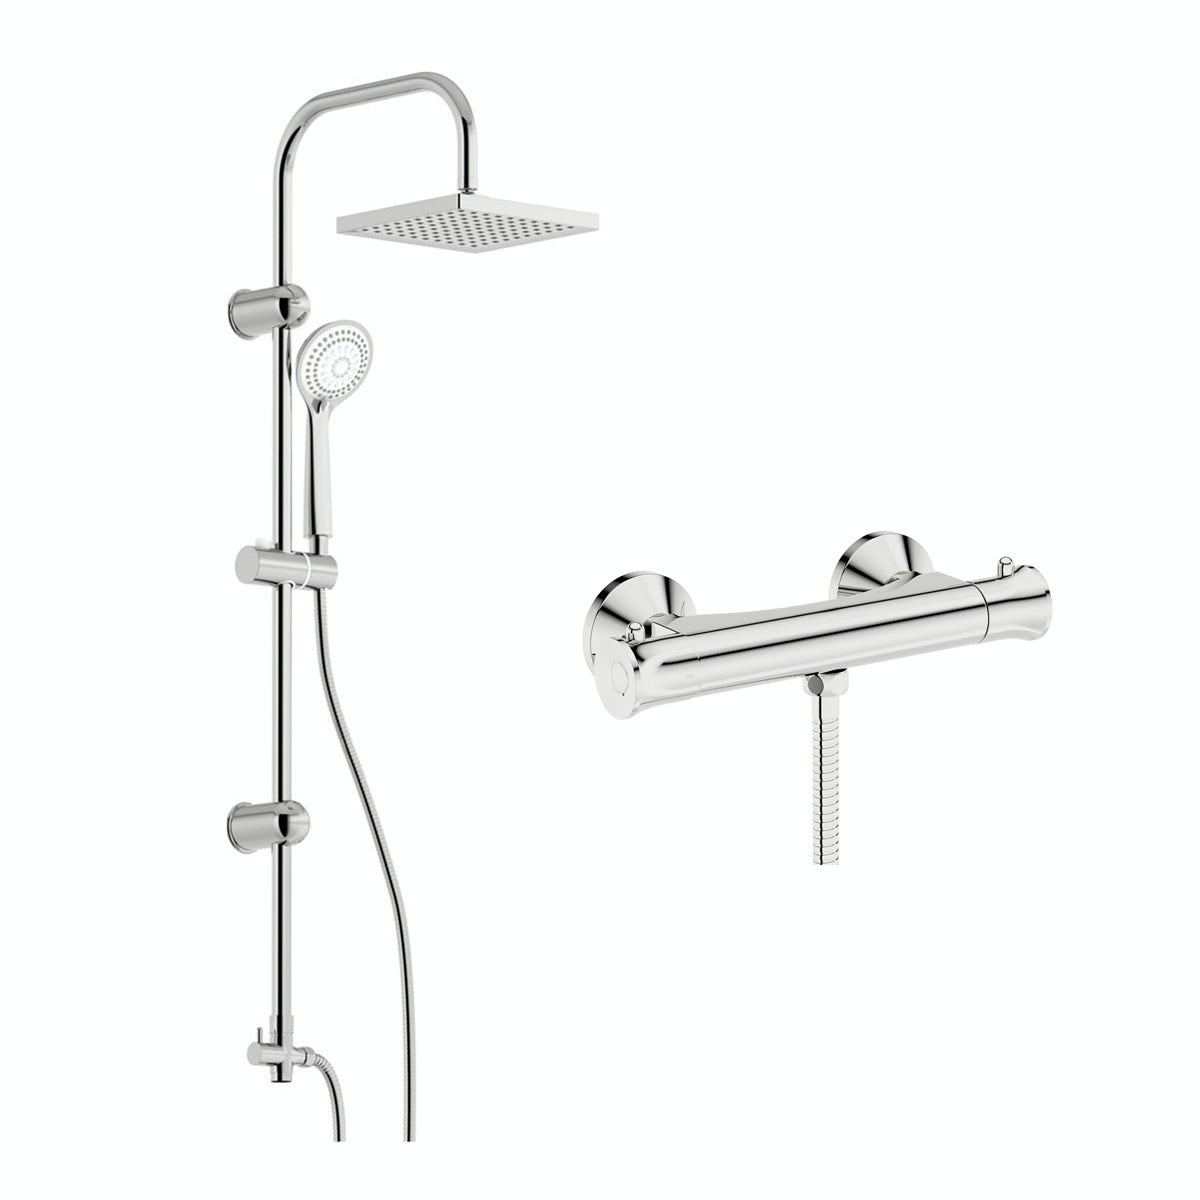 Clarity thermostatic shower valve with riser rail kit